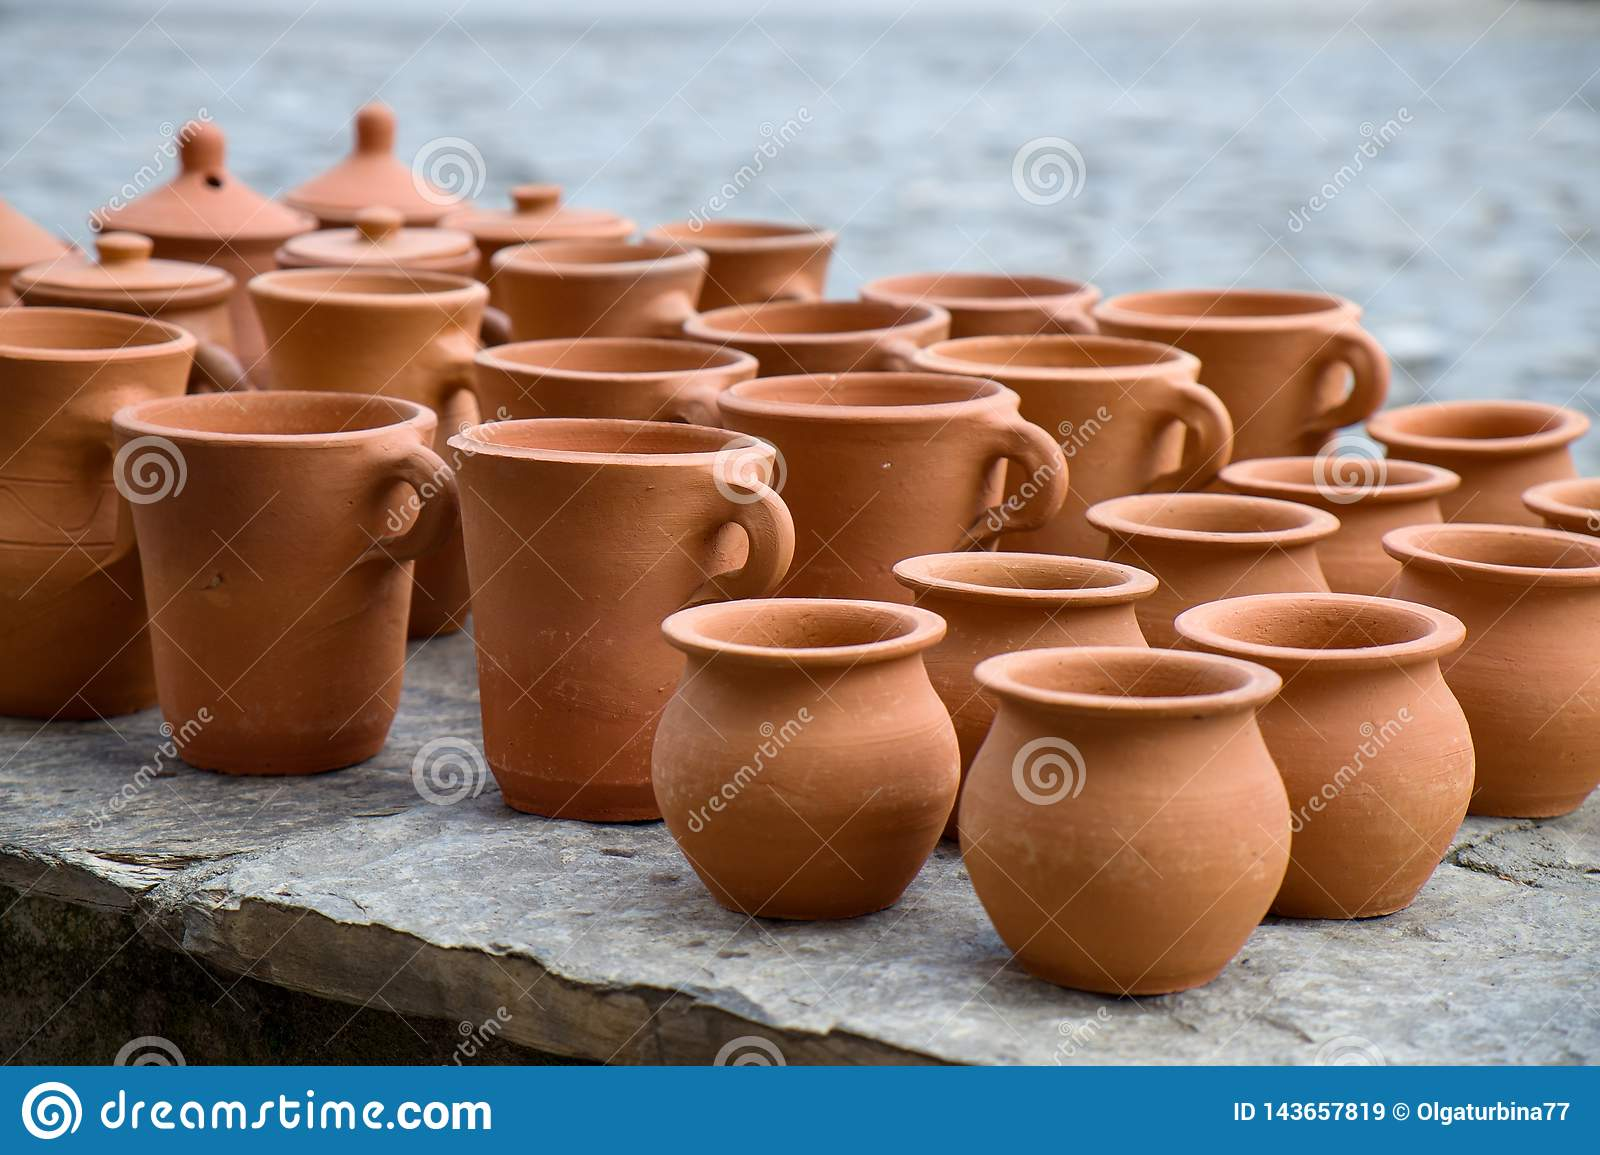 The handmade collection of clay pots in Sheki